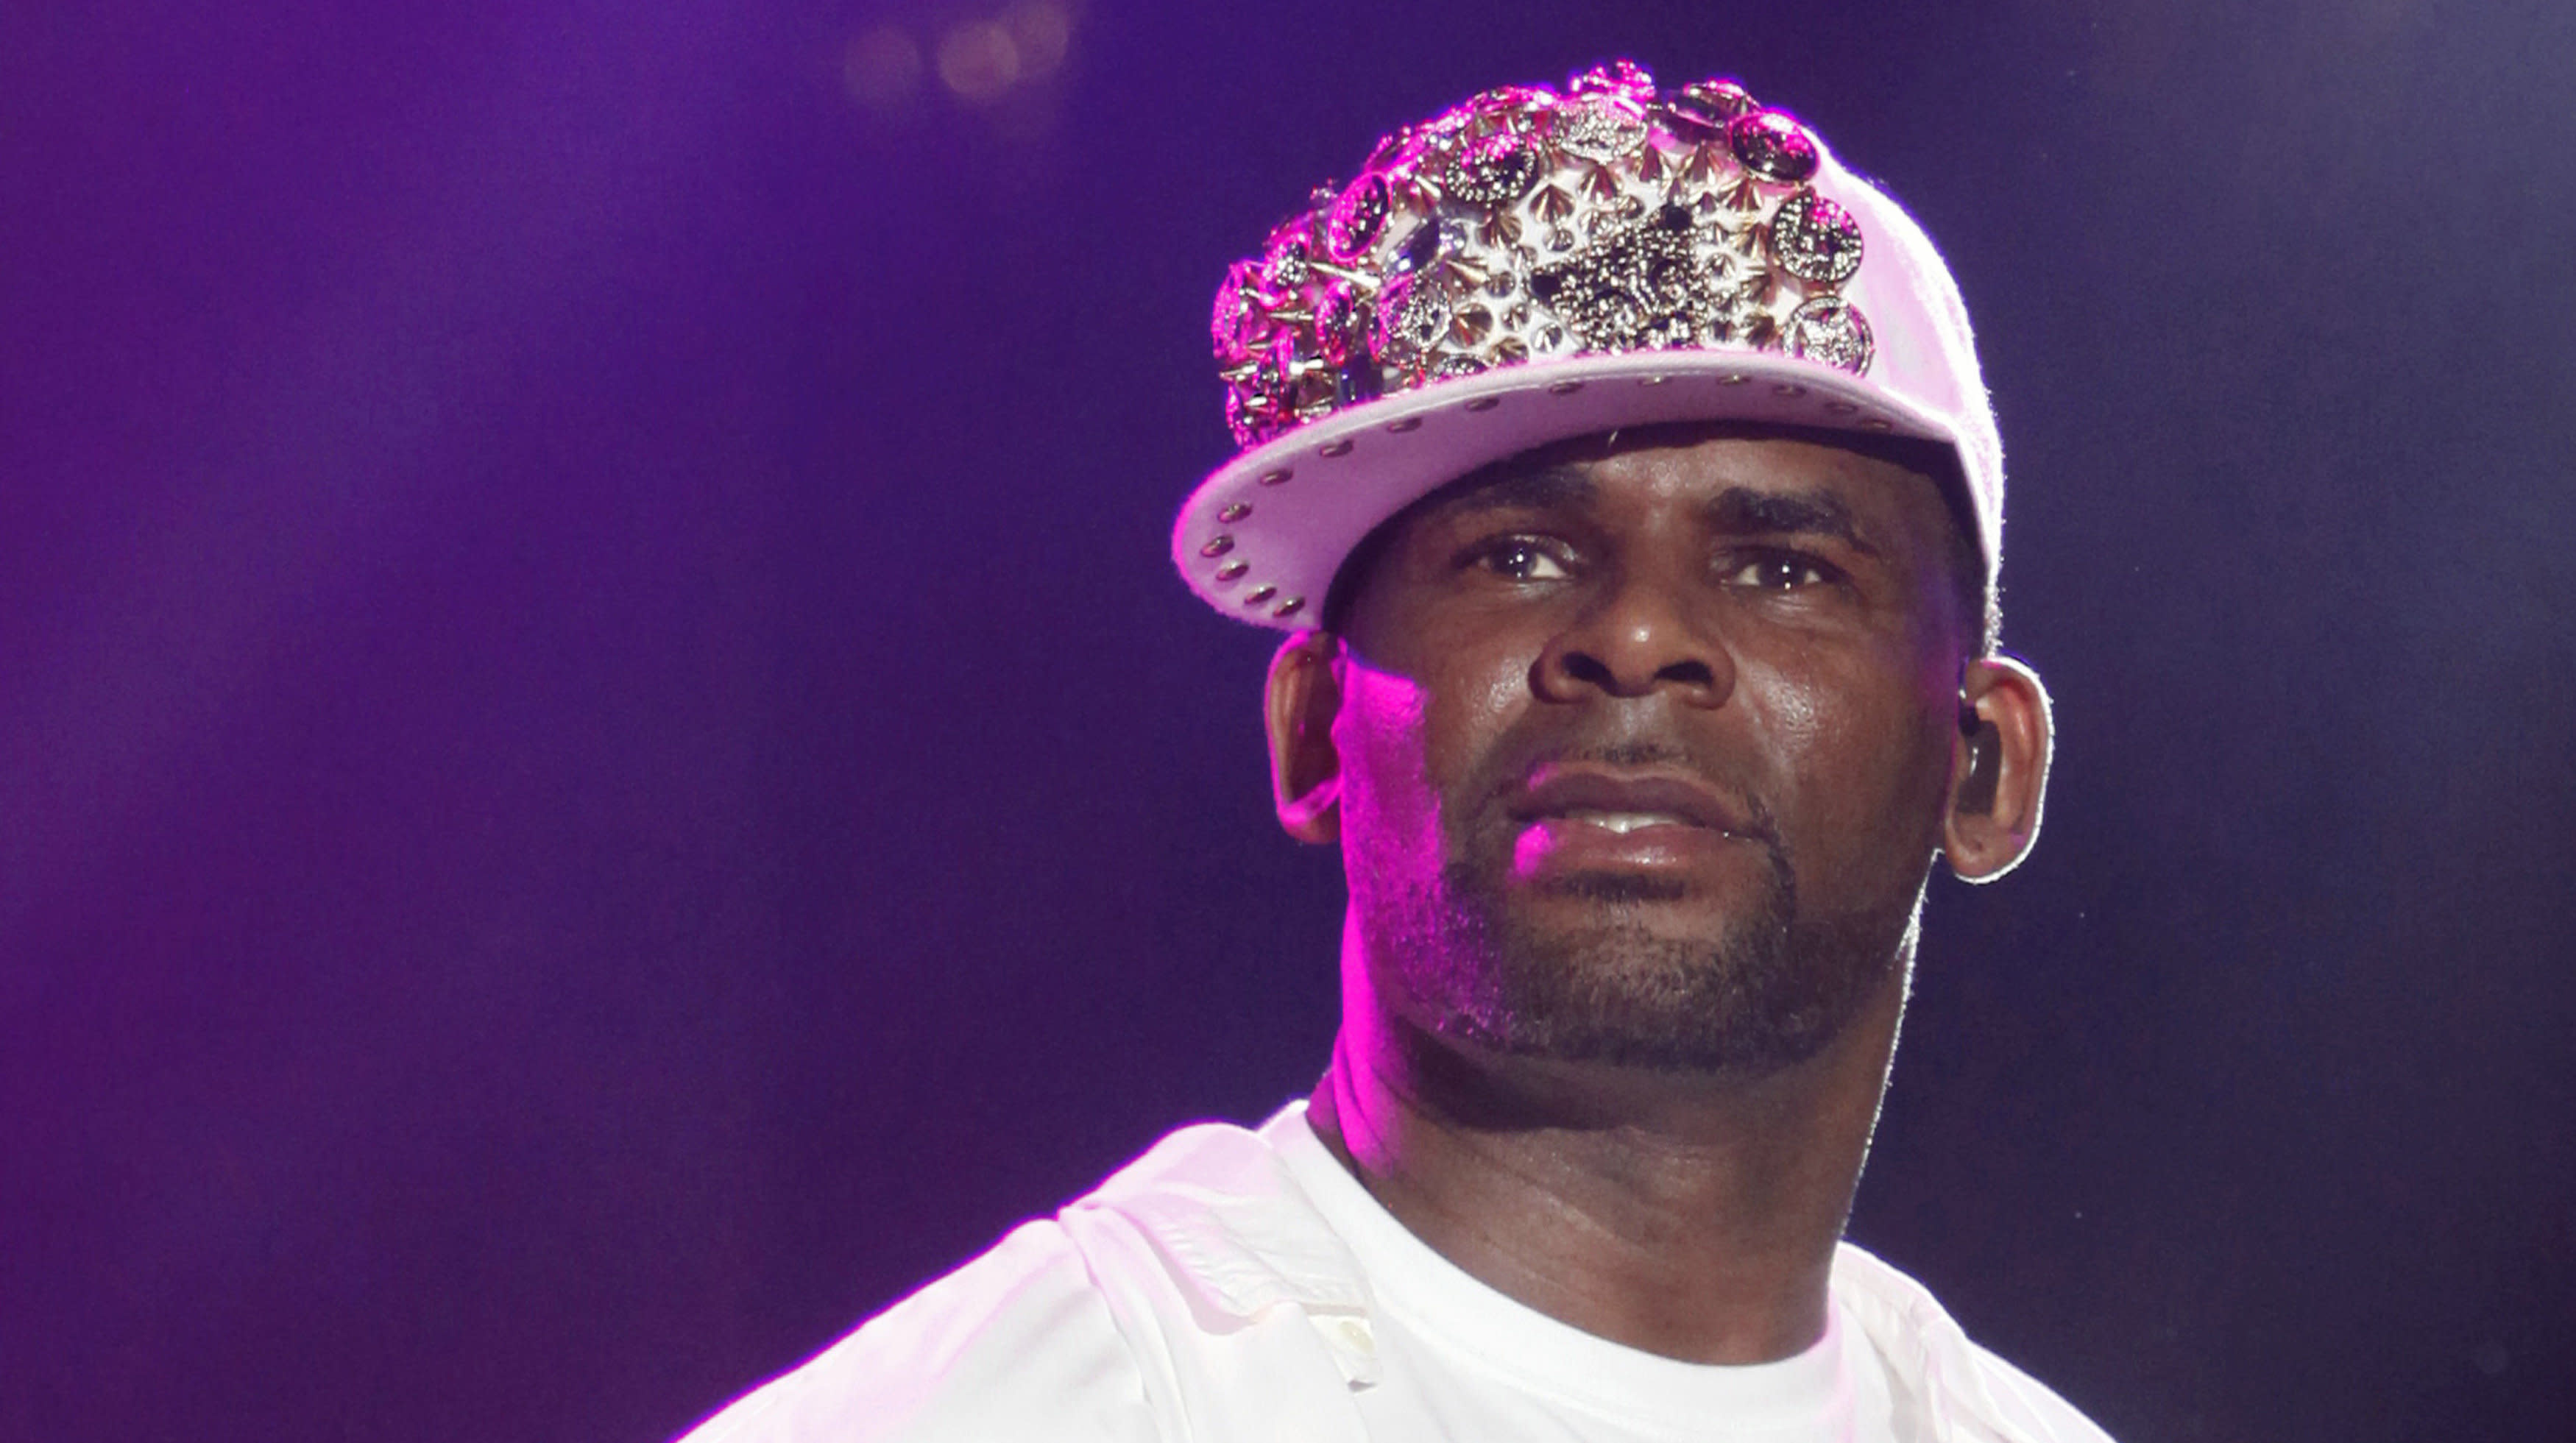 R. Kelly's Lawyer, Publicist And Assistant Flee From Singer Amid Scandals